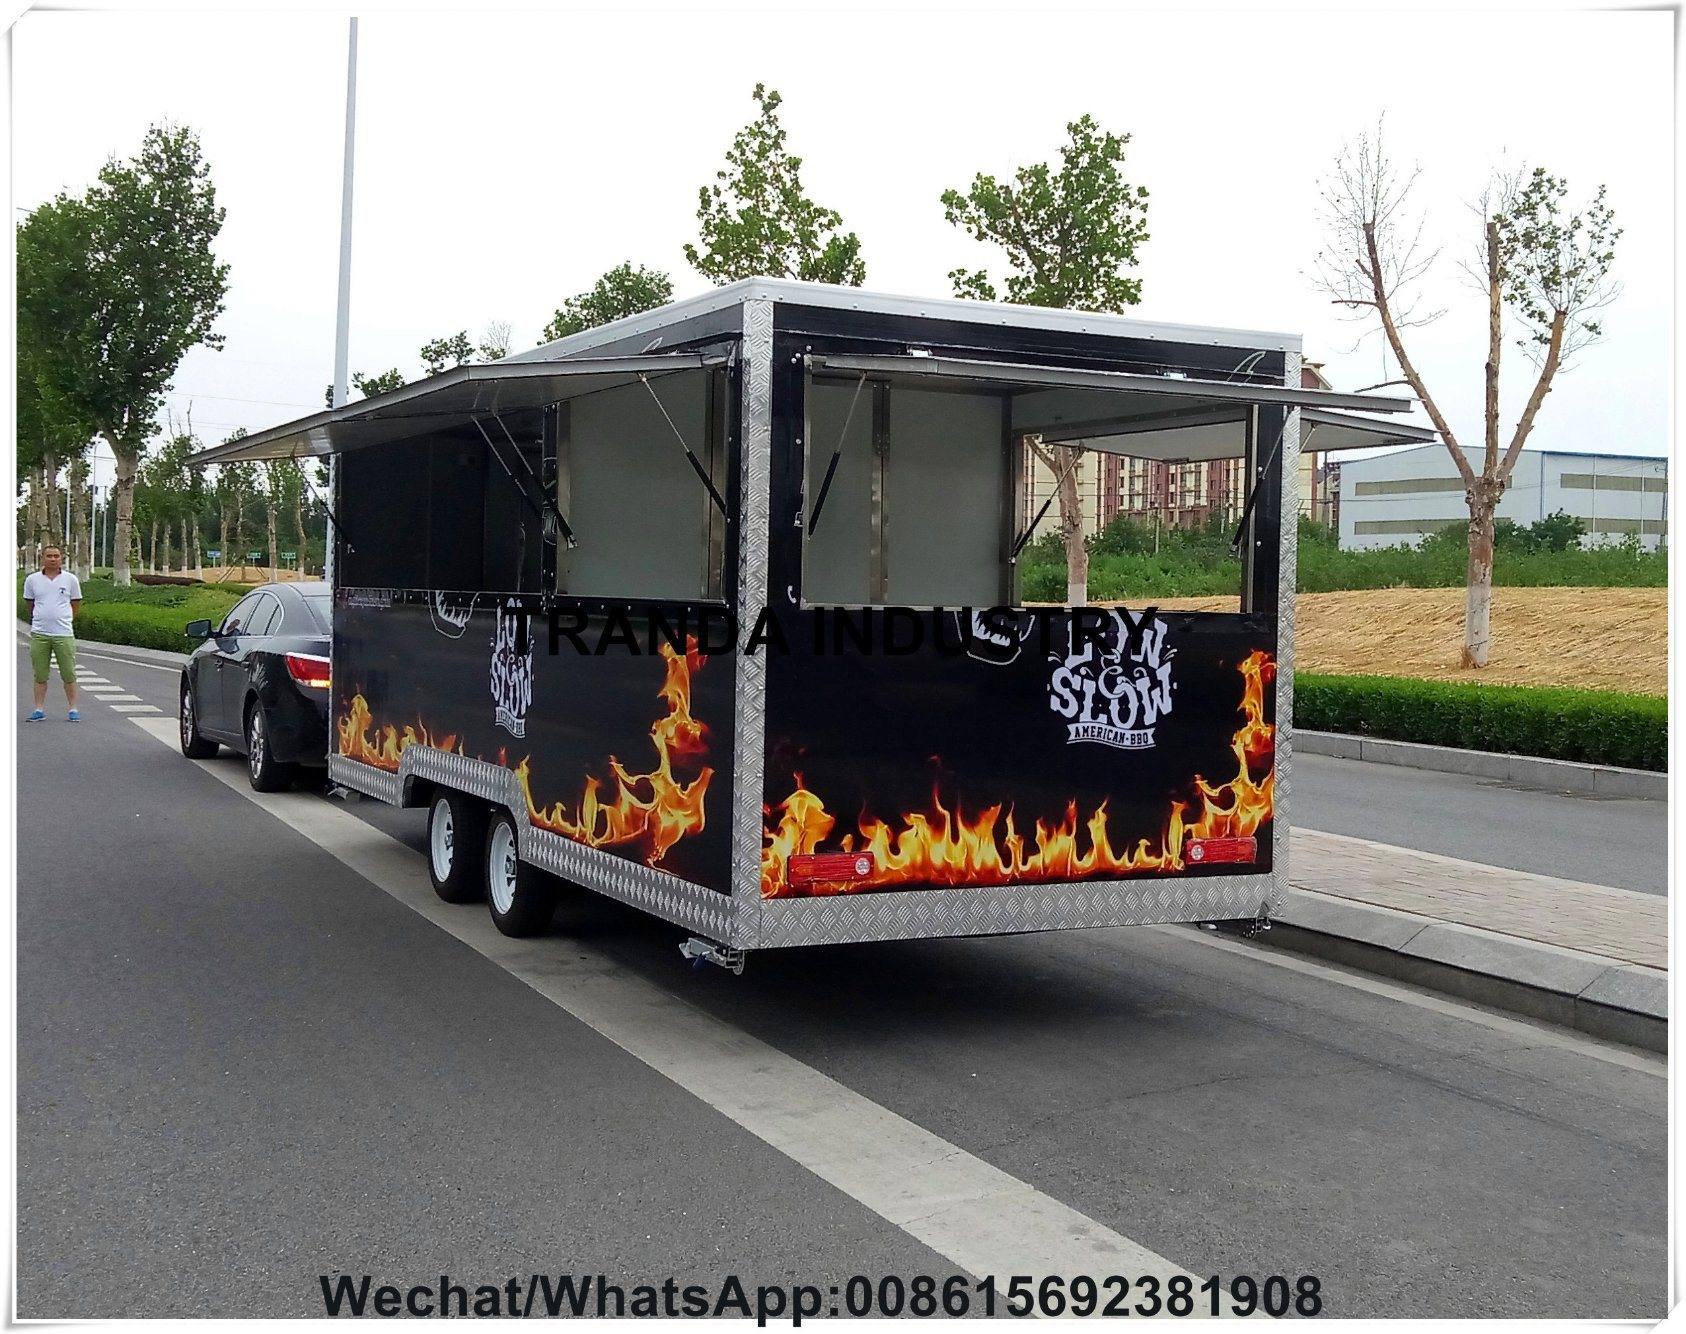 vans kitchen cabniets china australia standard beef food vending van